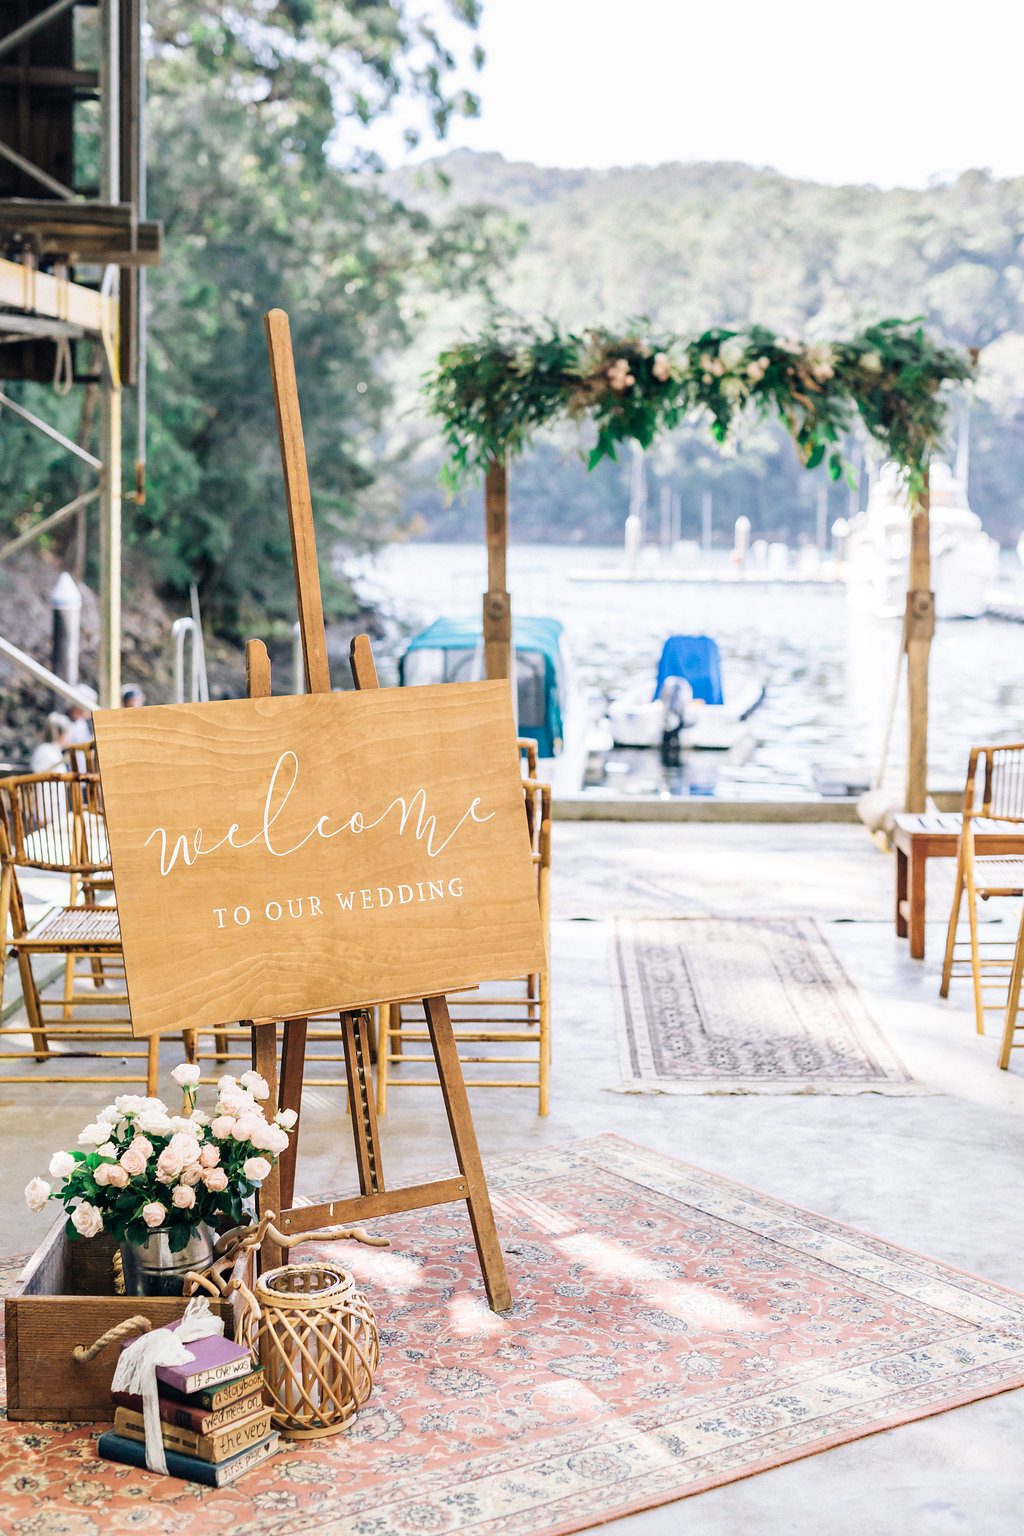 Wedding-Welcome-Sign-Rustic-Ceremony-Hire-Waterfront-Venue.jpg